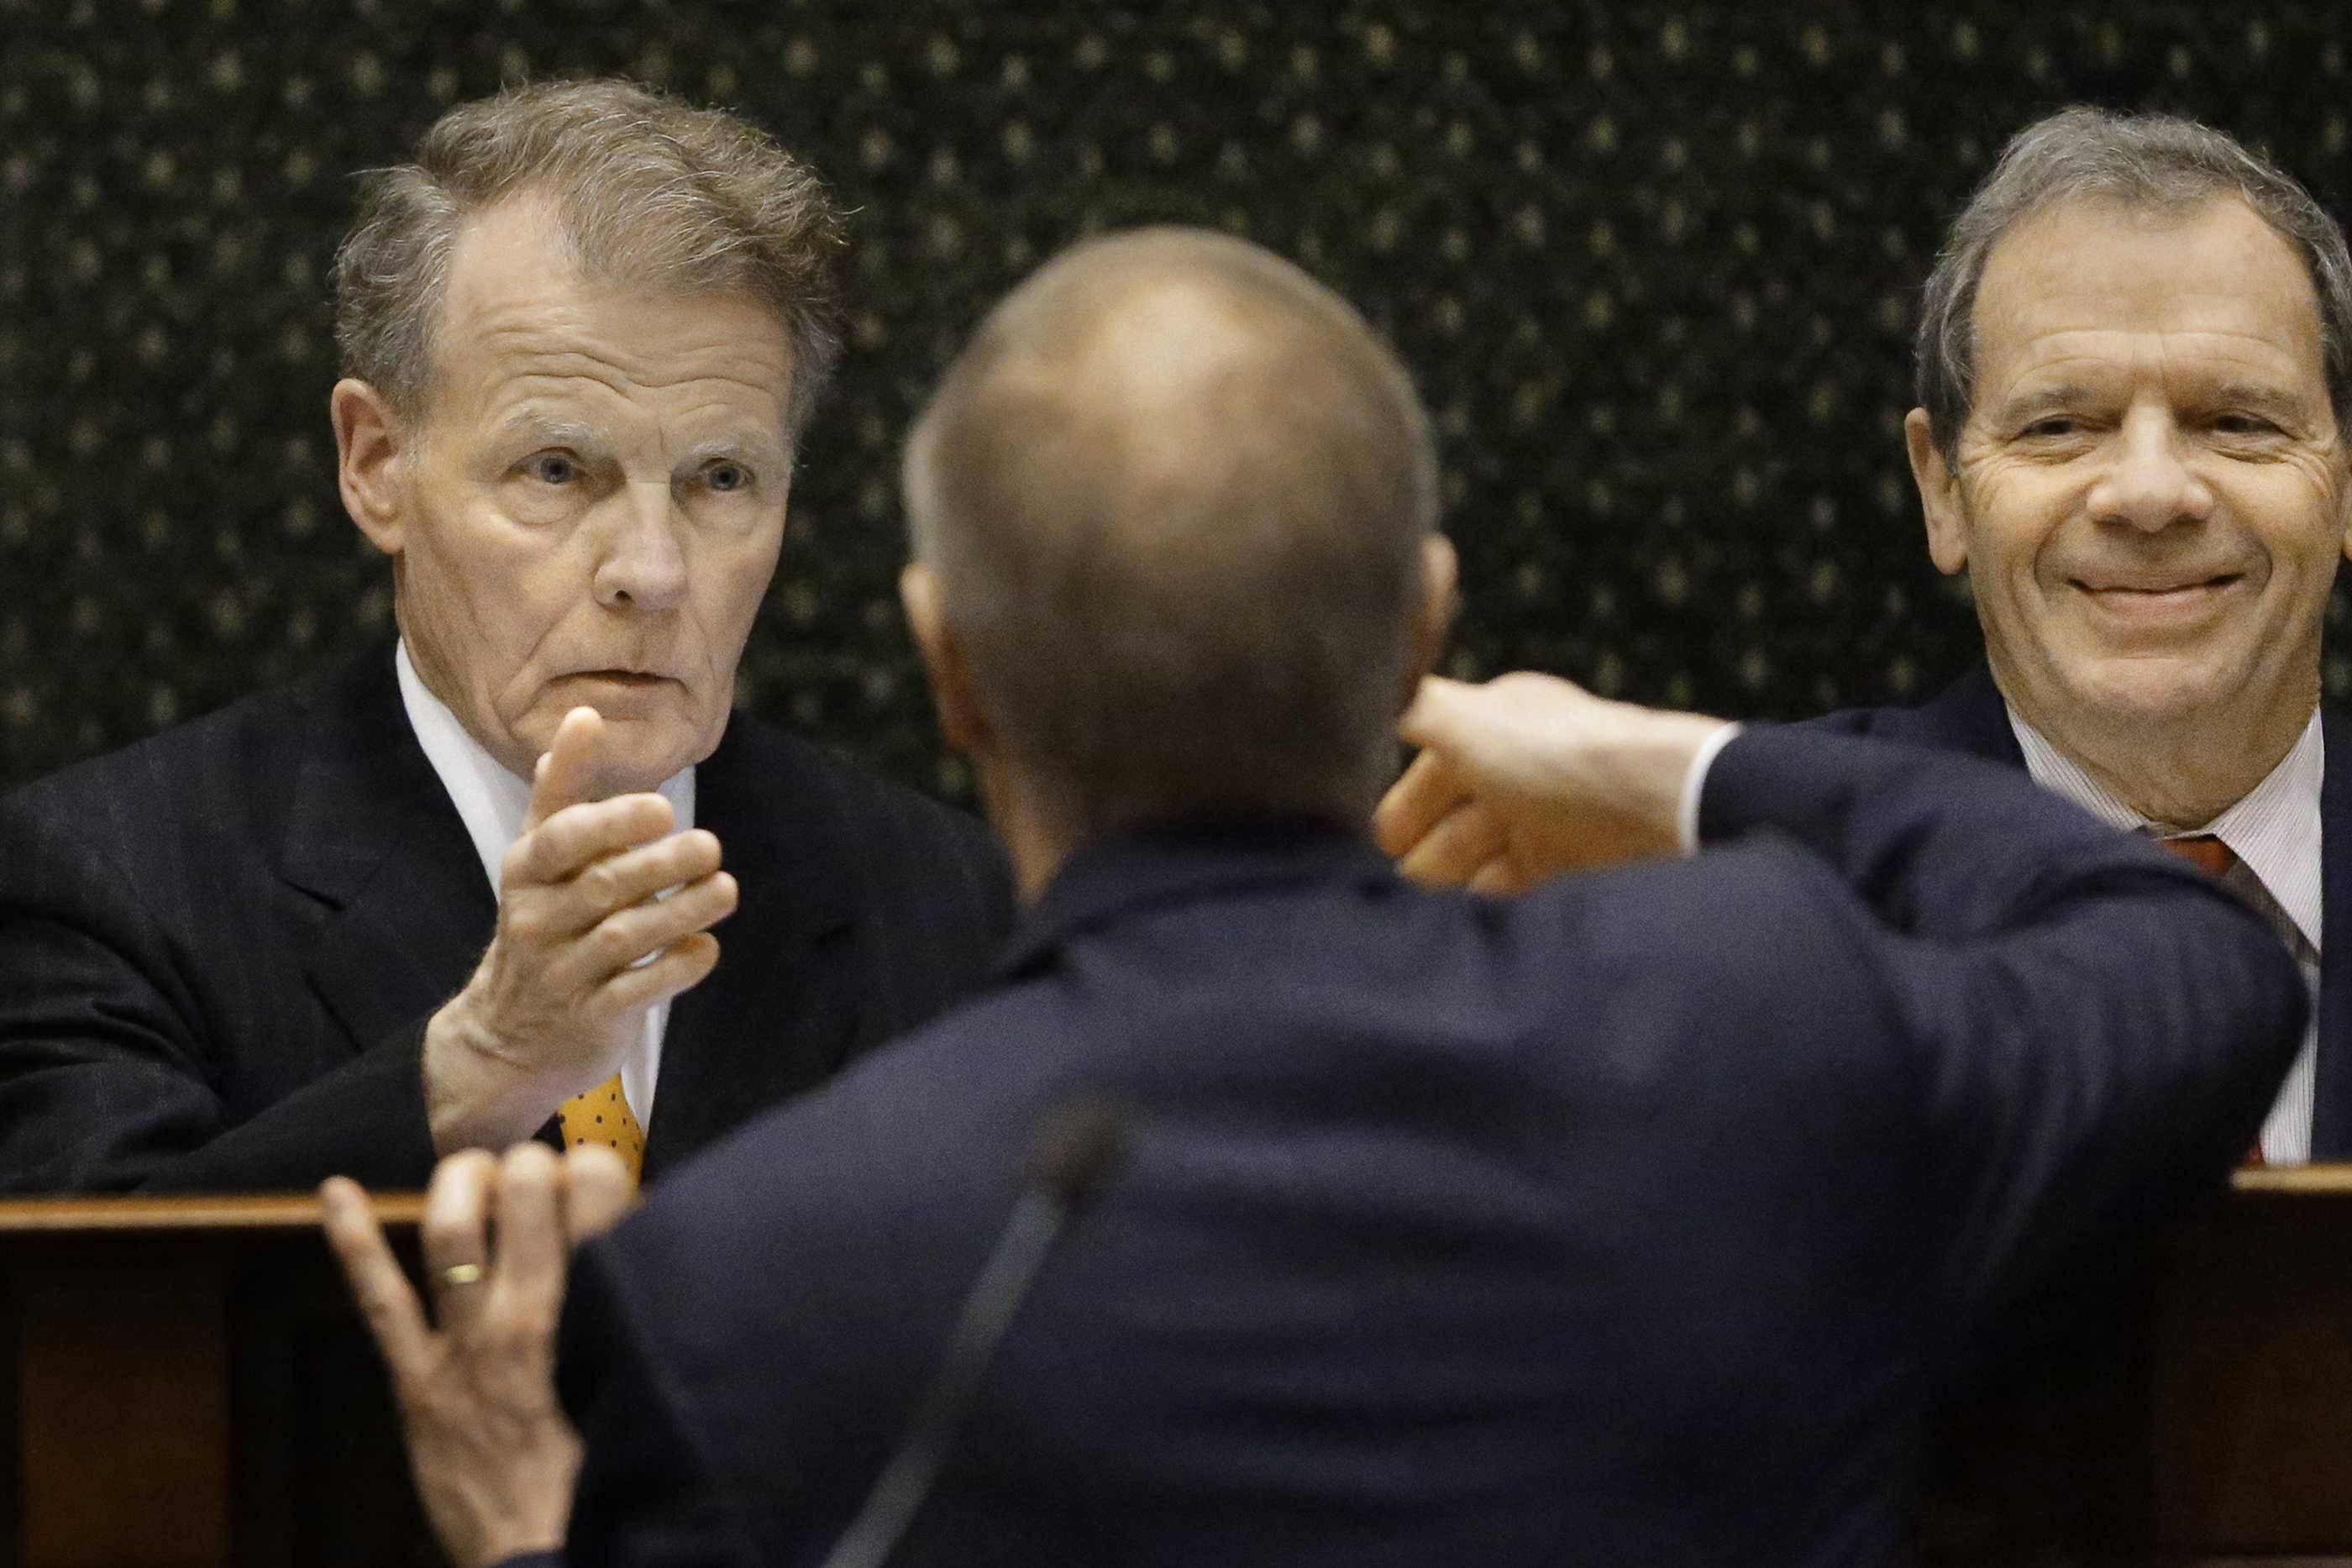 Gov. Bruce Rauner, center, reaches to shake the hand of House Speaker Michael Madigan last February after delivering the State of the State address. The two, plus other top legislative Republicans and Democrats, are set to meet Tuesday.